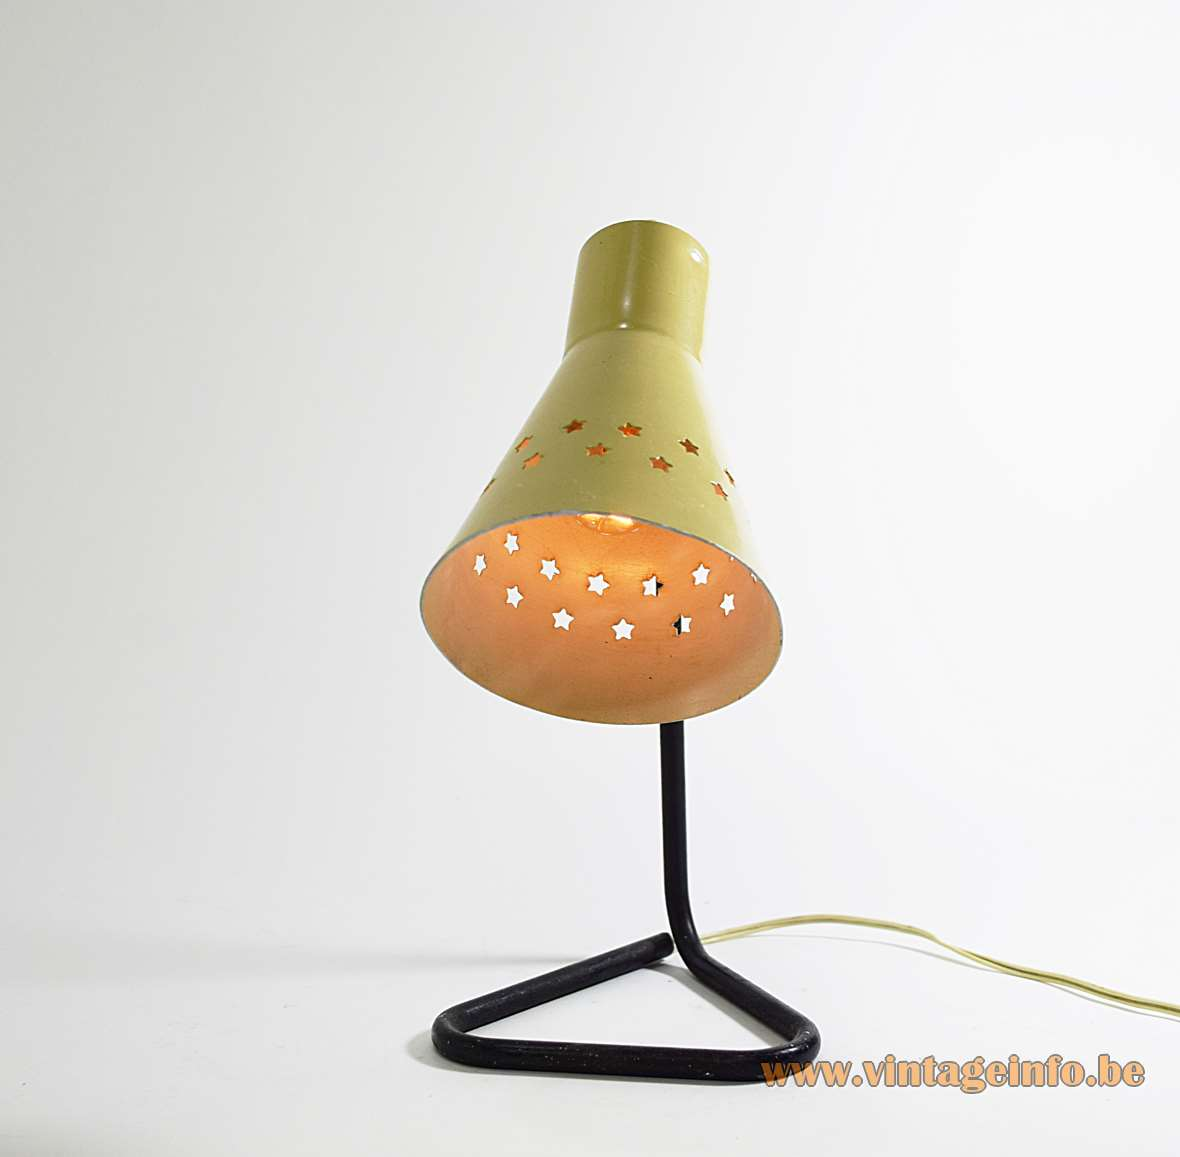 1950s Desk or Wall Light Vintage Info - All About Vintage Lighting Vintage Info All About ...